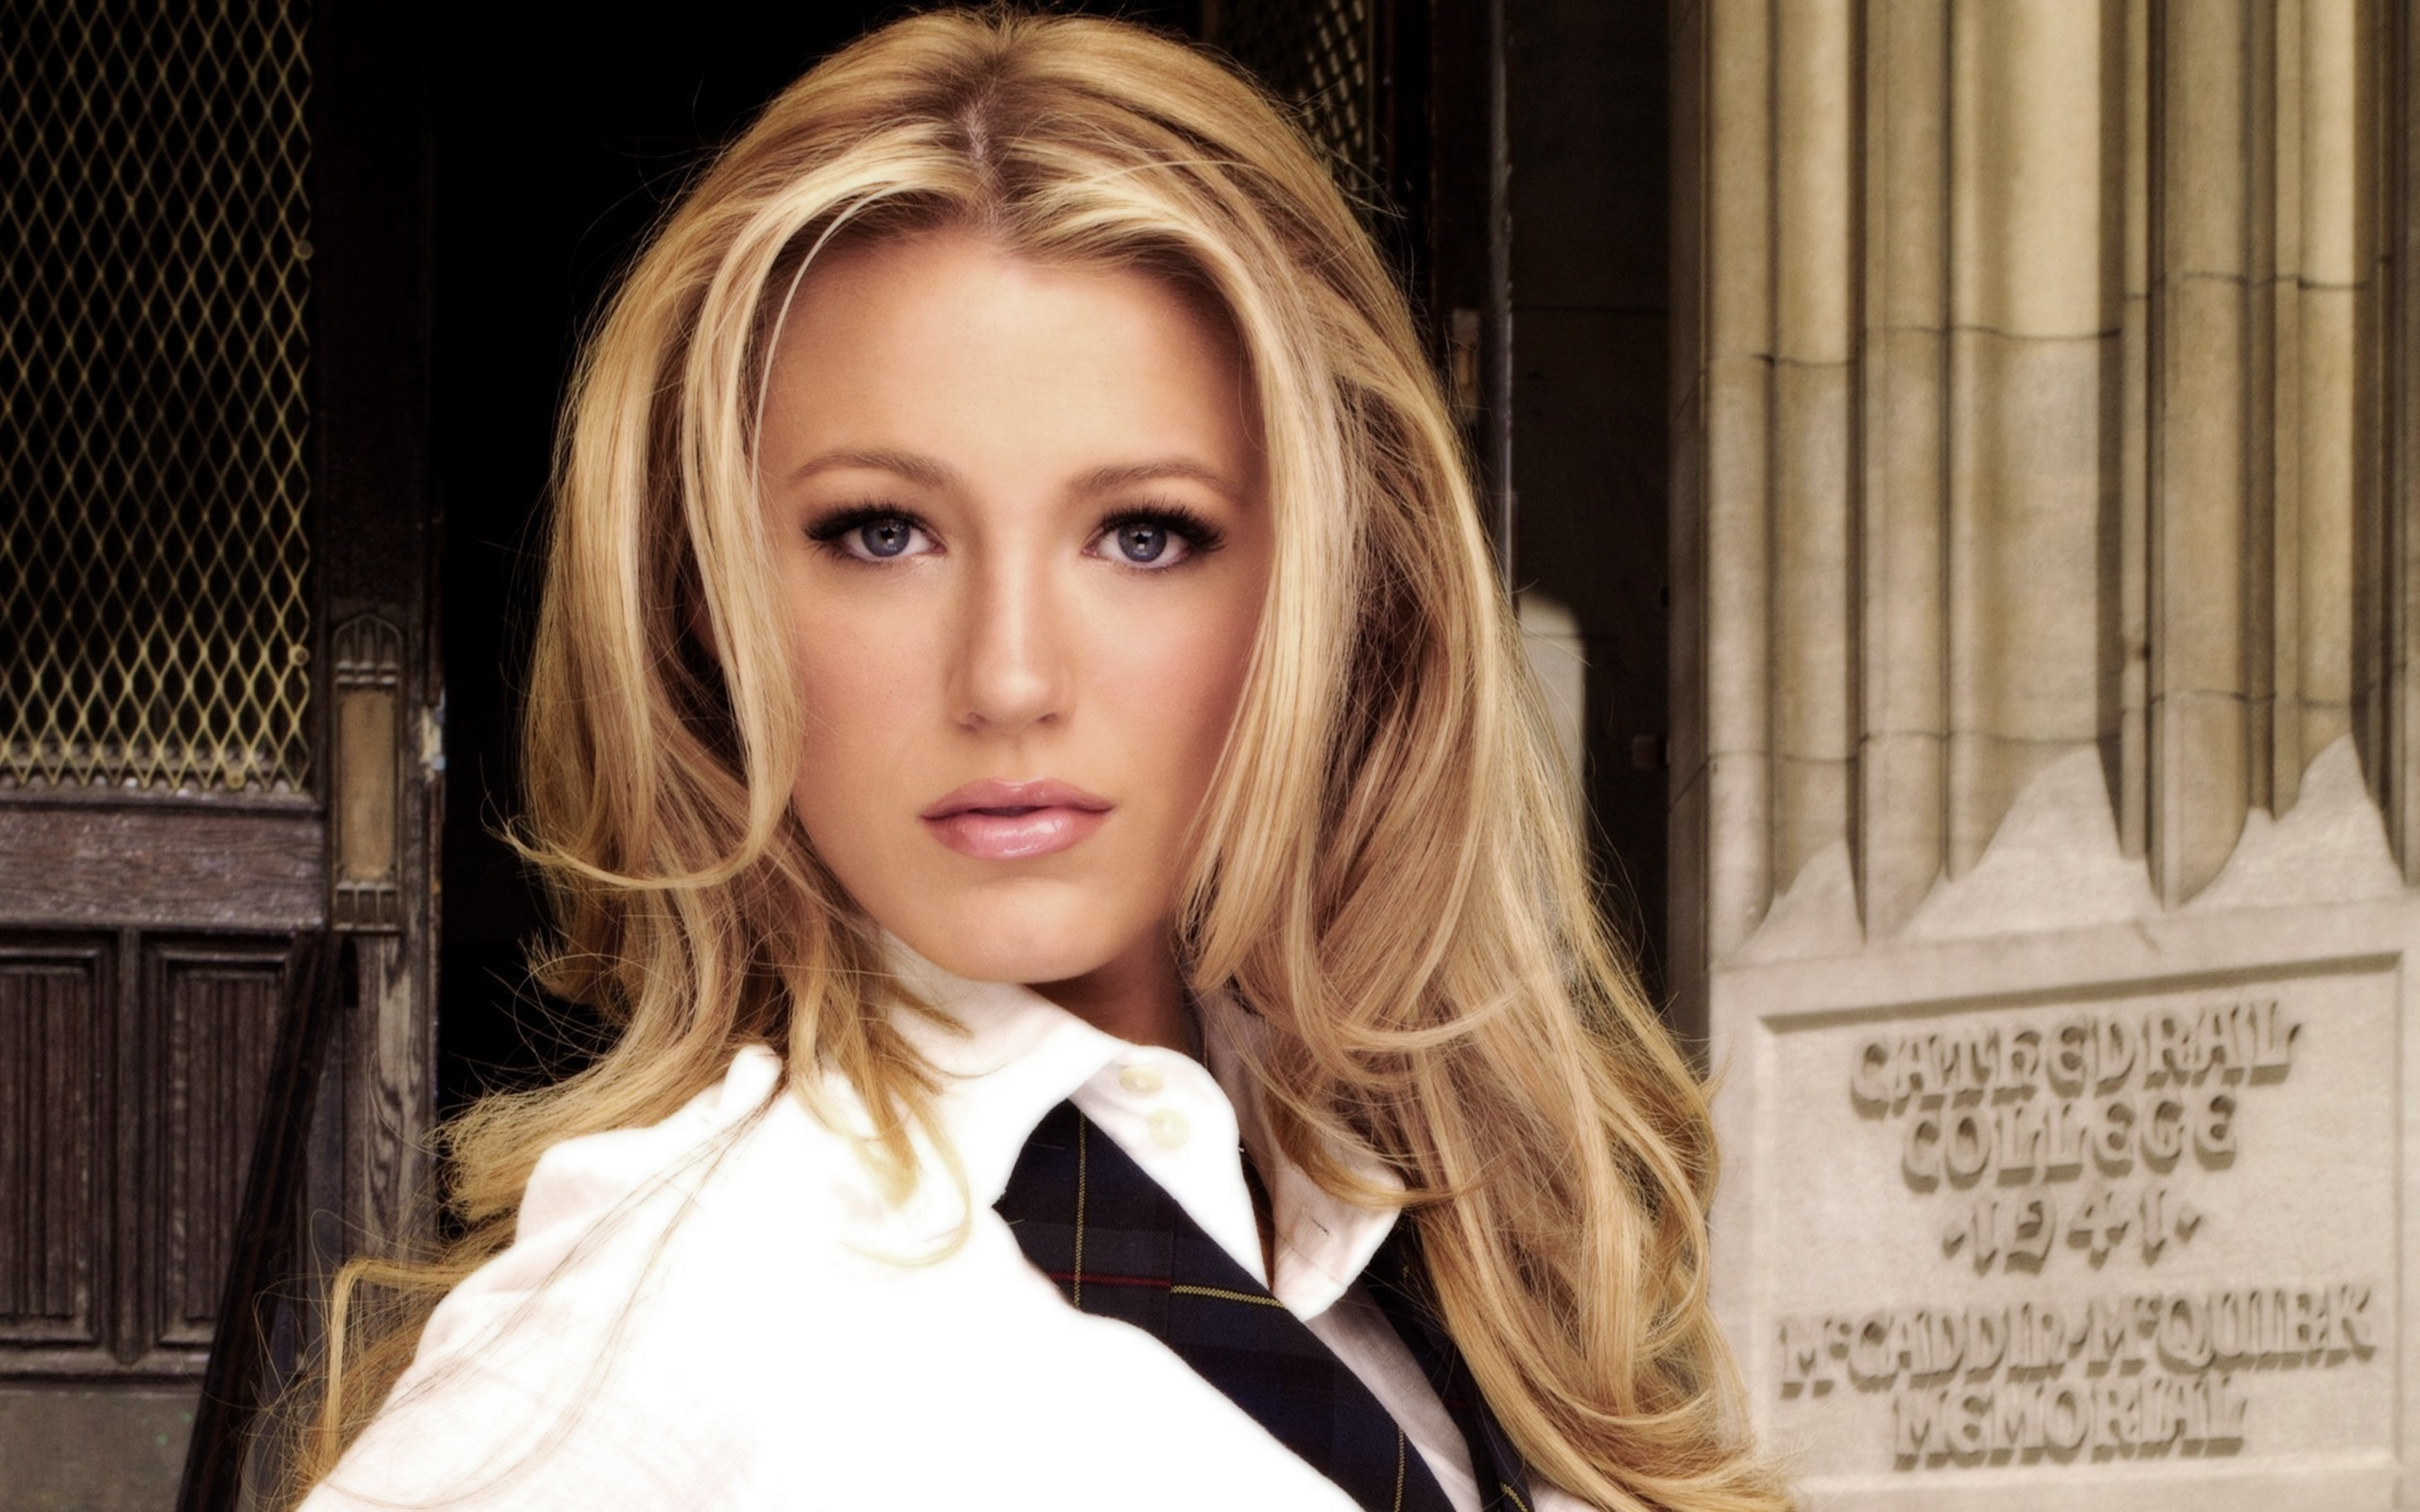 blake lively hd wallpaper | background image | 2560x1600 | id:236730